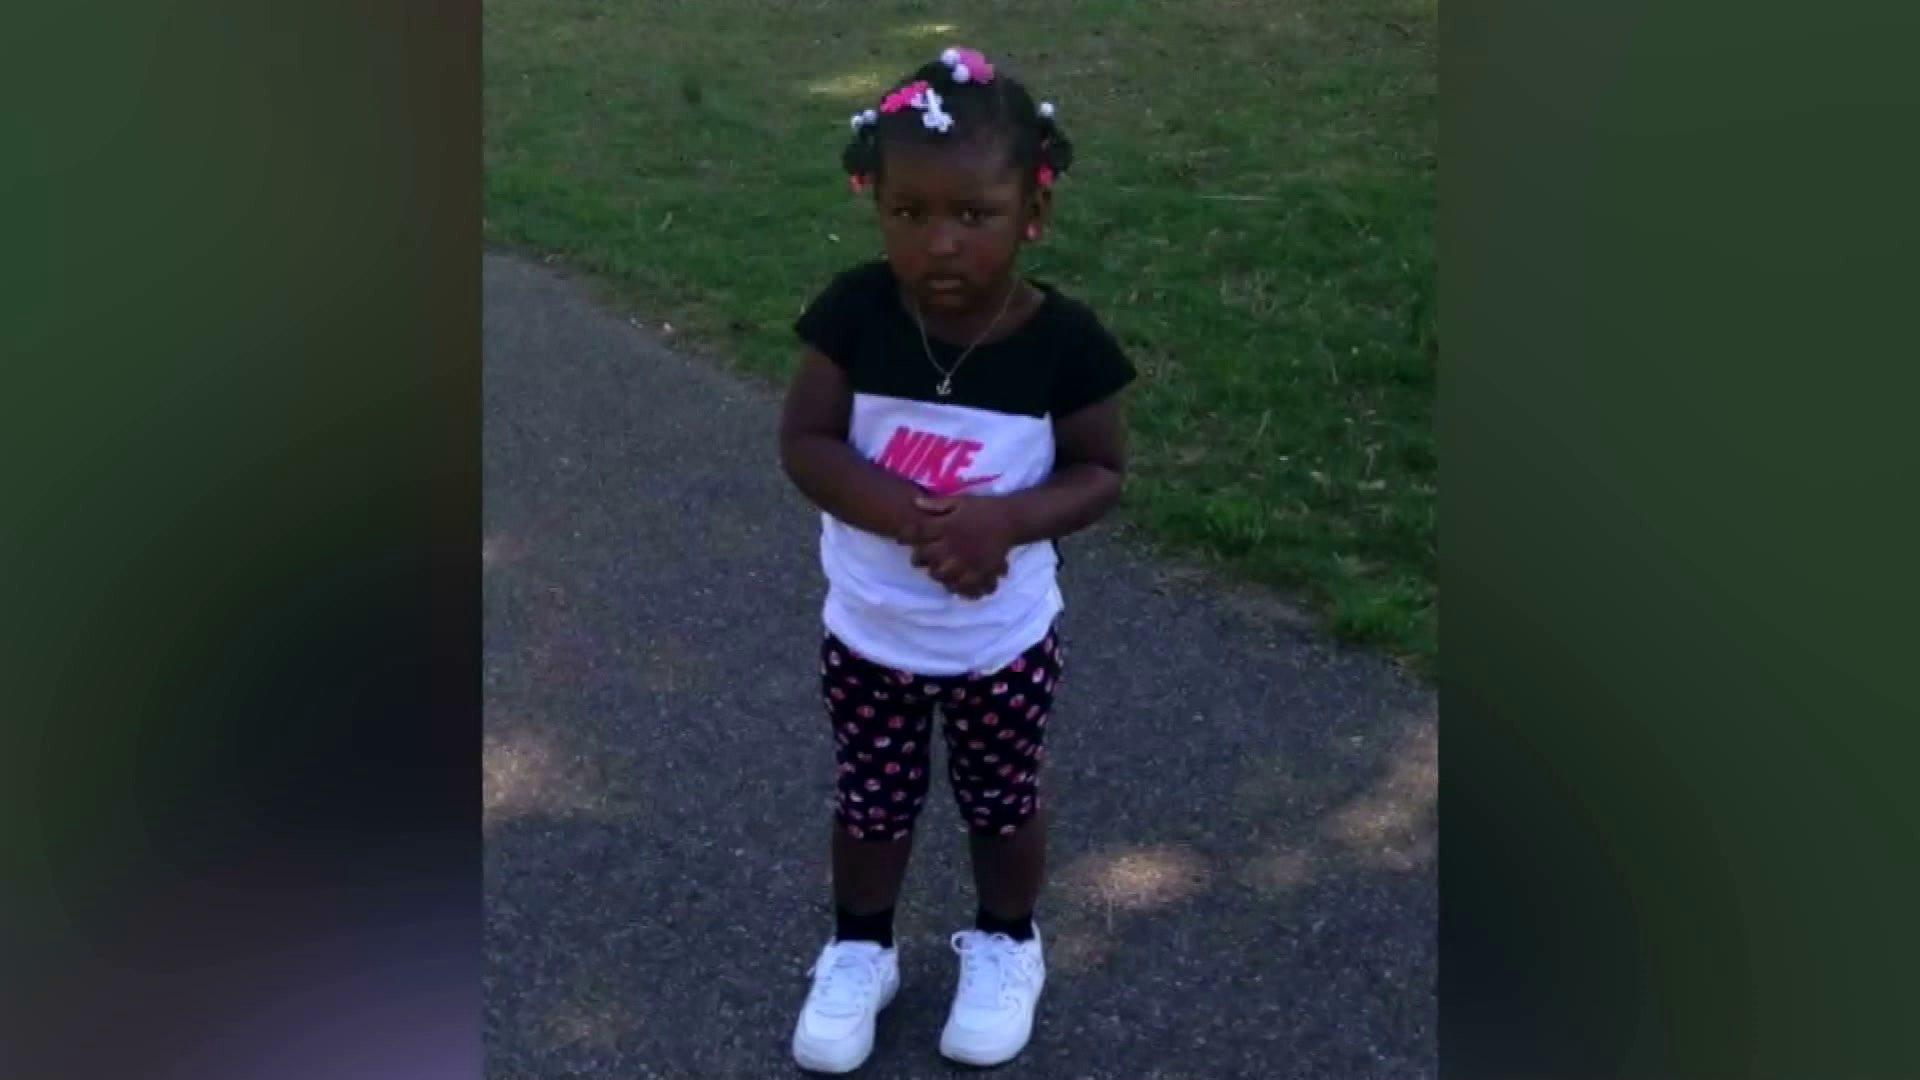 Two-Year-Old Killed in Road Rage Shooting Laid to Rest